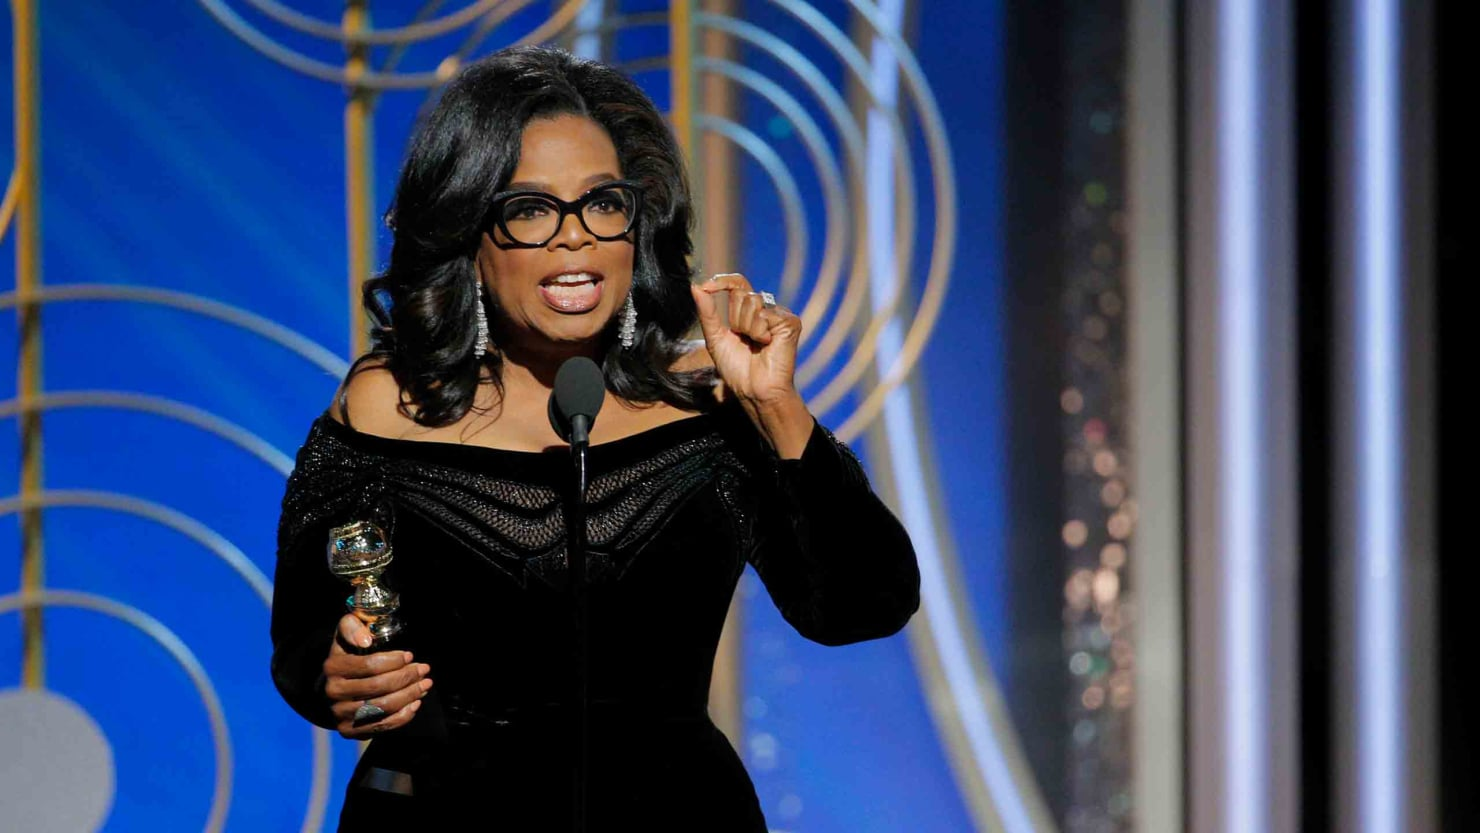 Gayle King talks about Oprah's position on running for president